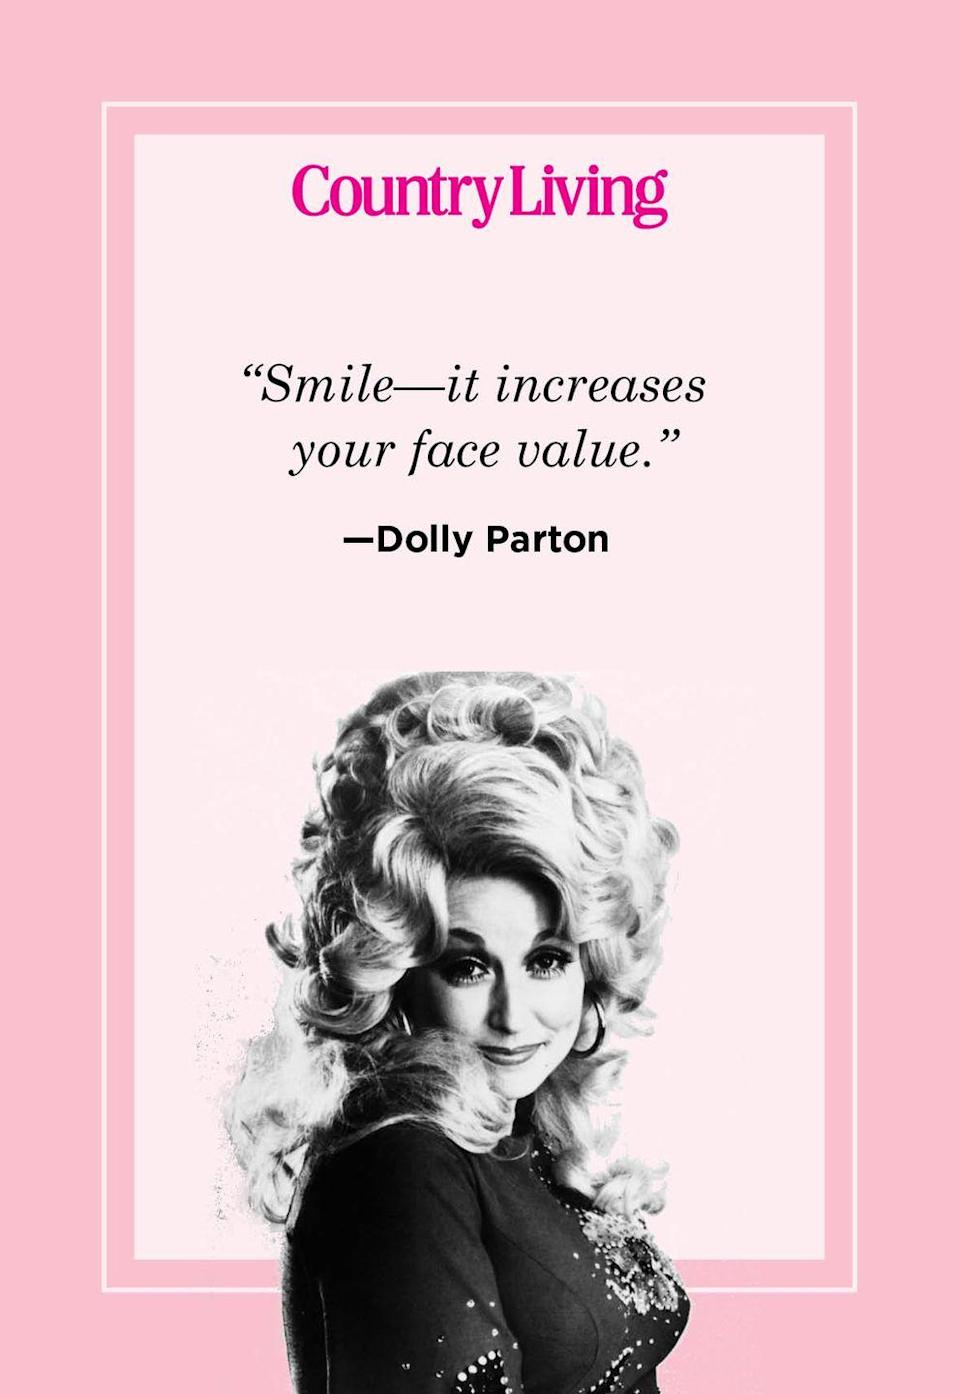 "<p>""Smile—it increases your face value.""</p>"